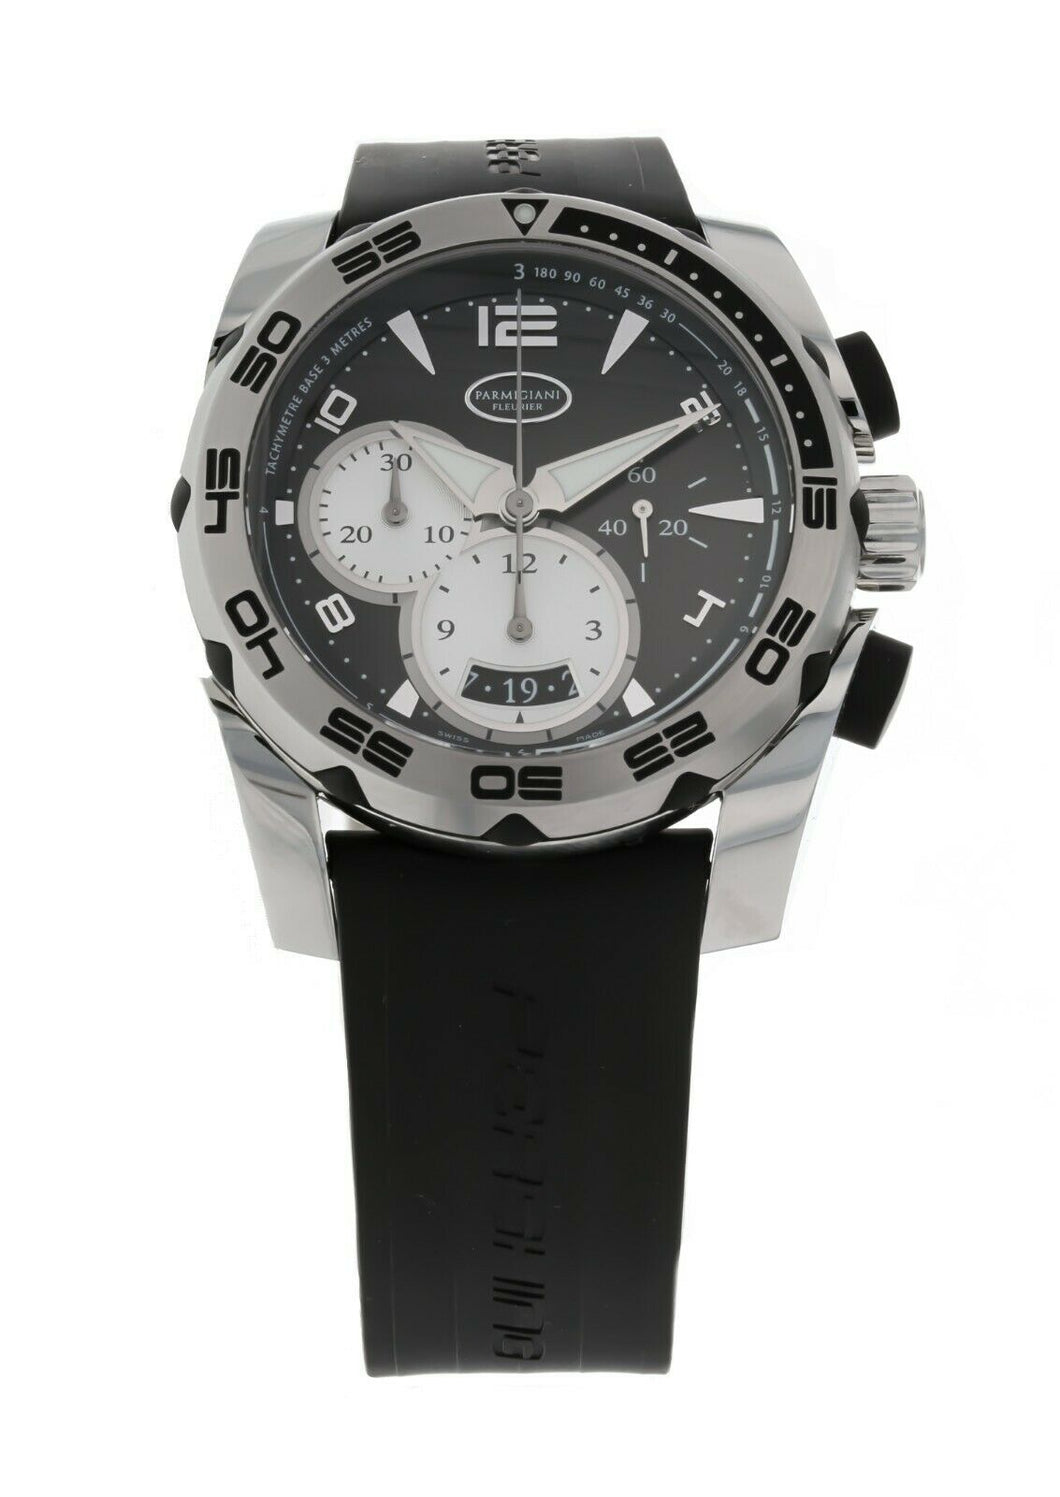 Parmigiani Pershing 45mm Chronograph Men's Automatic Watch PF601396-06